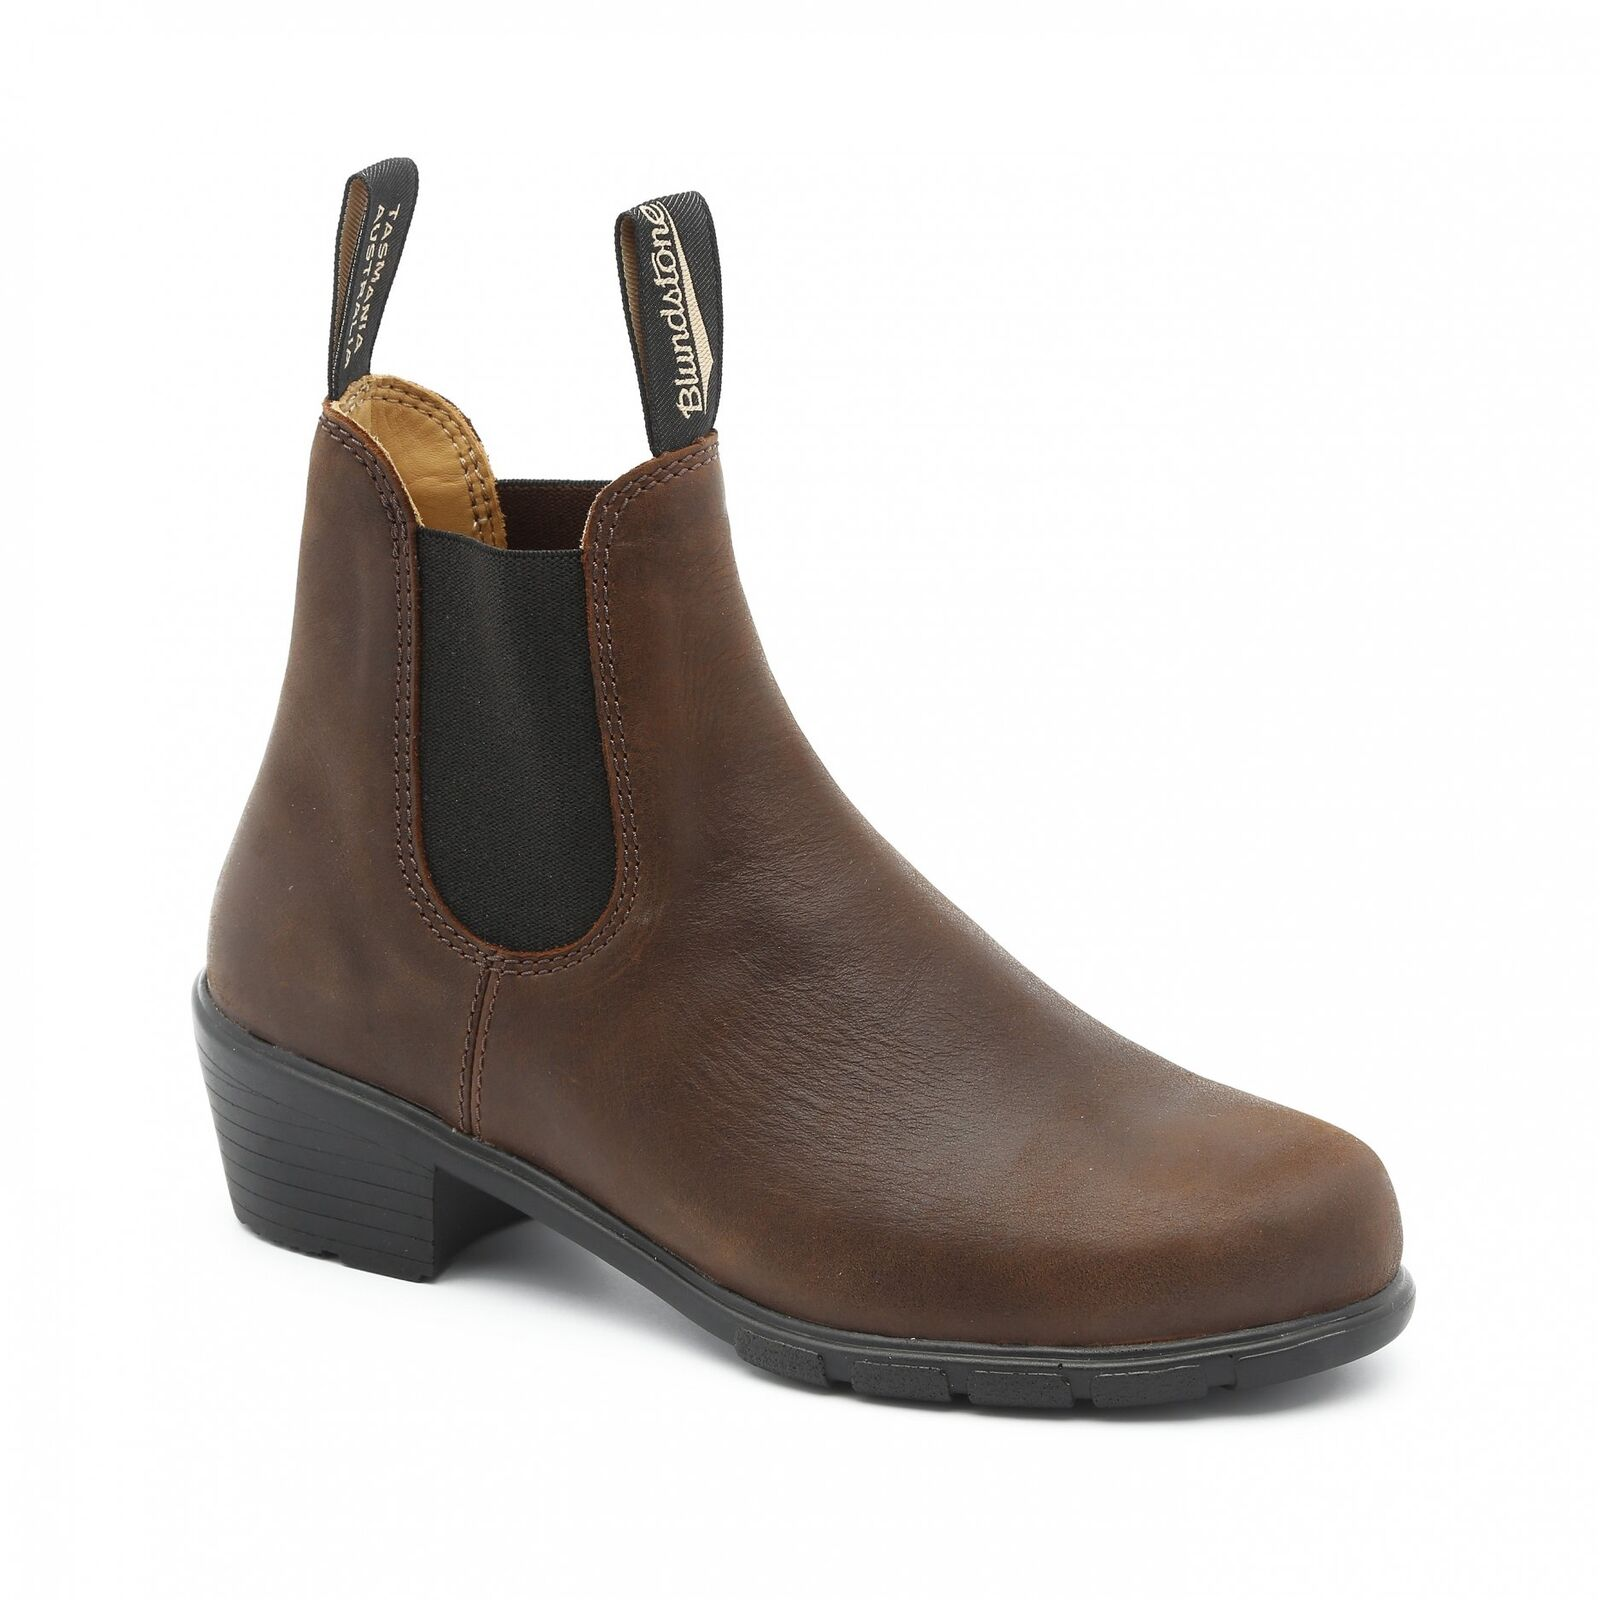 NEW Blundstone Style 1673 Brown Heeled Boot Leather For Women 1